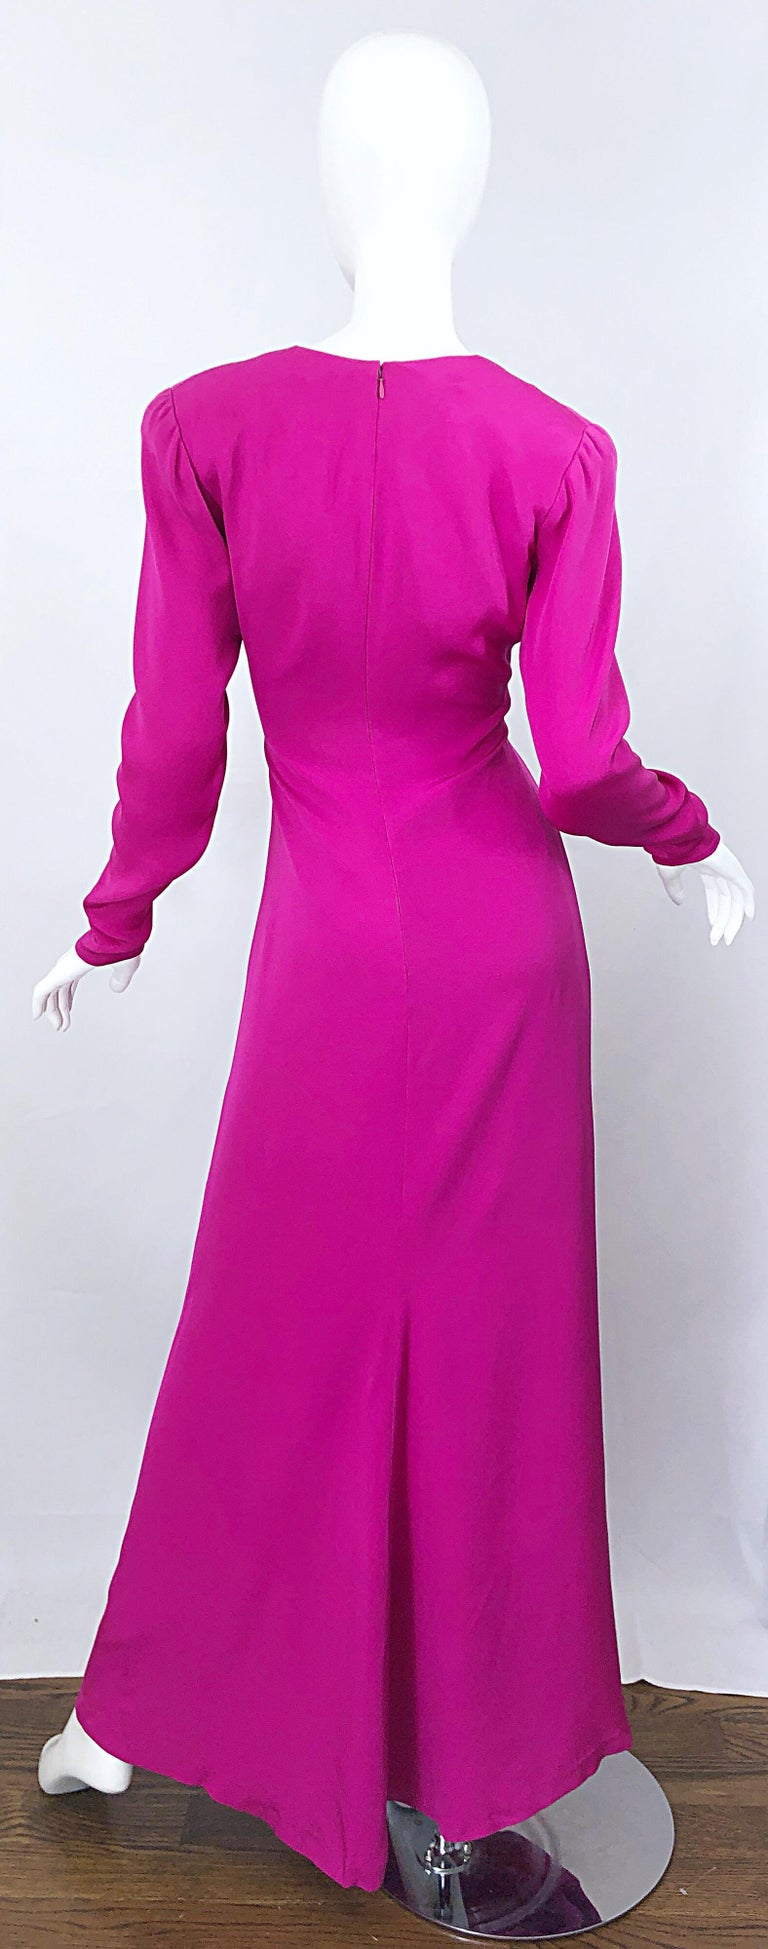 Women's Vintage Bill Blass Size 10 Hot Pink Silk Jersey Cut - Out 1980s 80s Evening Gown For Sale